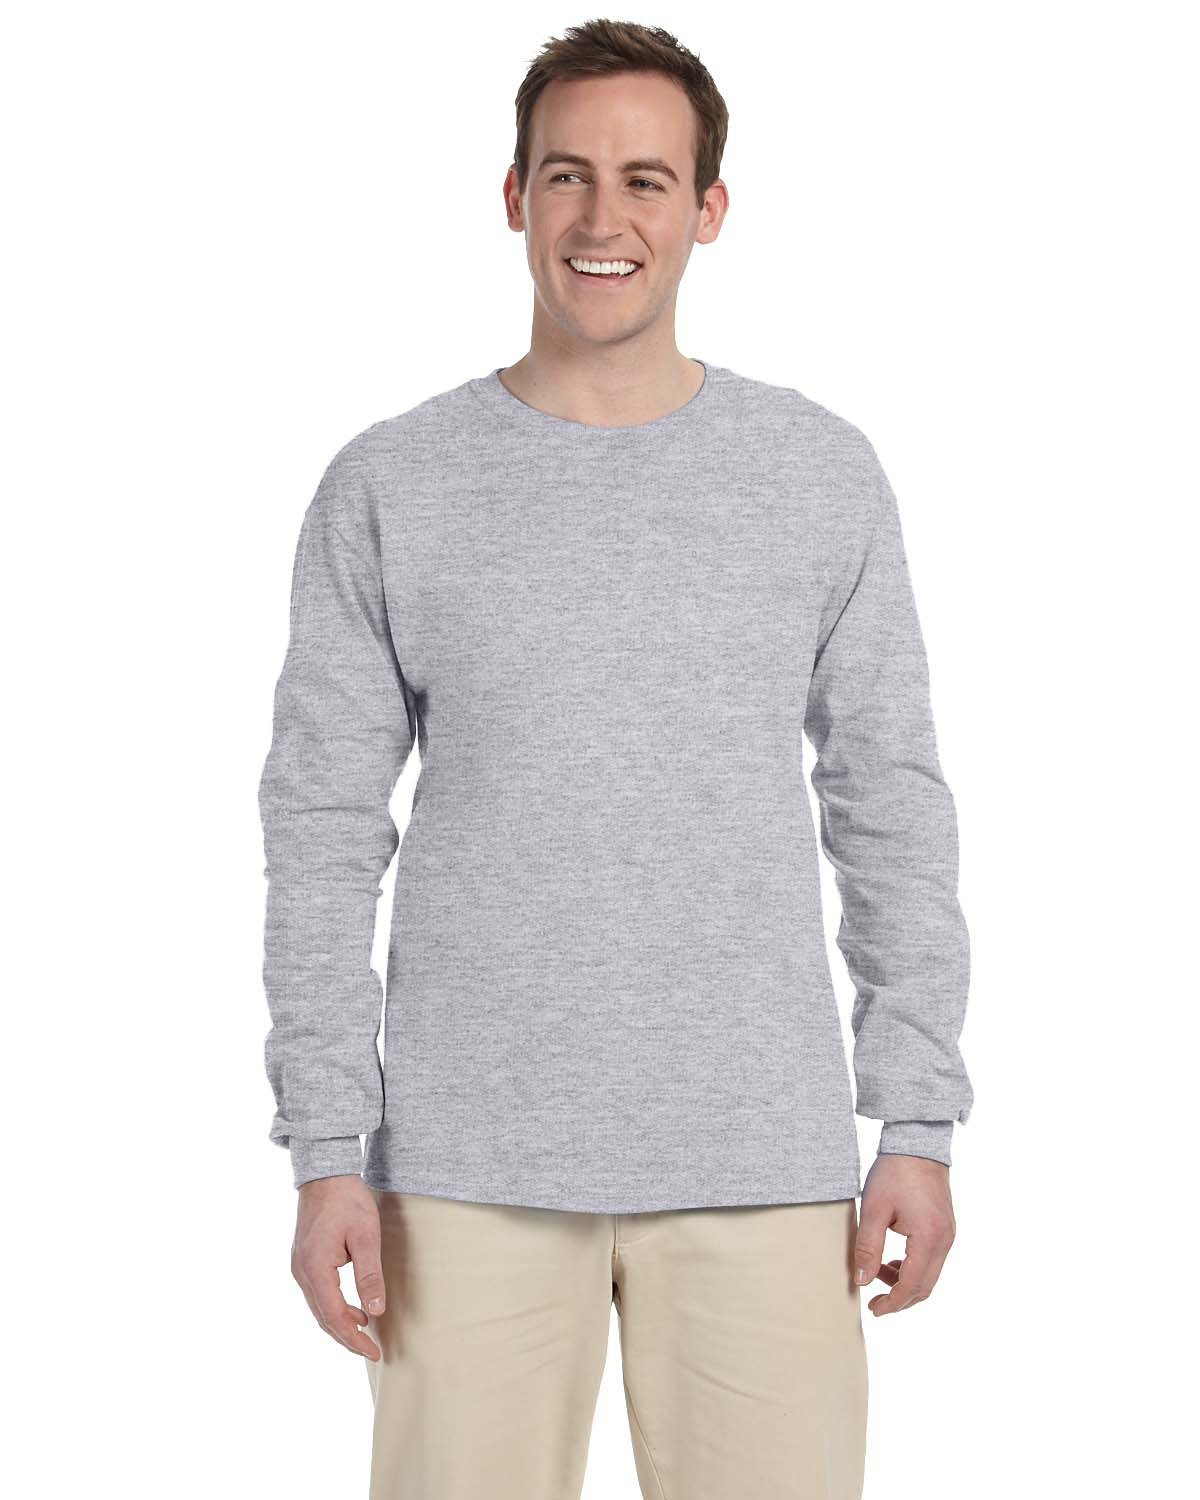 Fruit of the Loom Adult HD Cotton™ Long-Sleeve T-Shirt ATHLETIC HEATHER